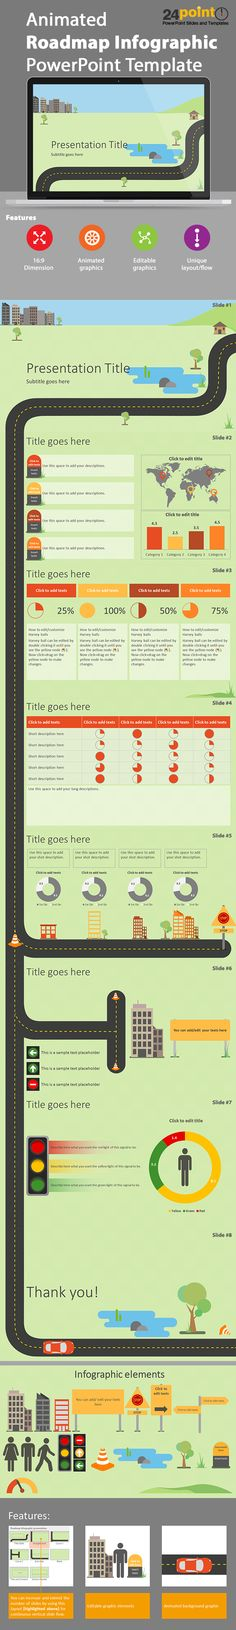 Editable Infographic Roadmap Template  Cool Infographics